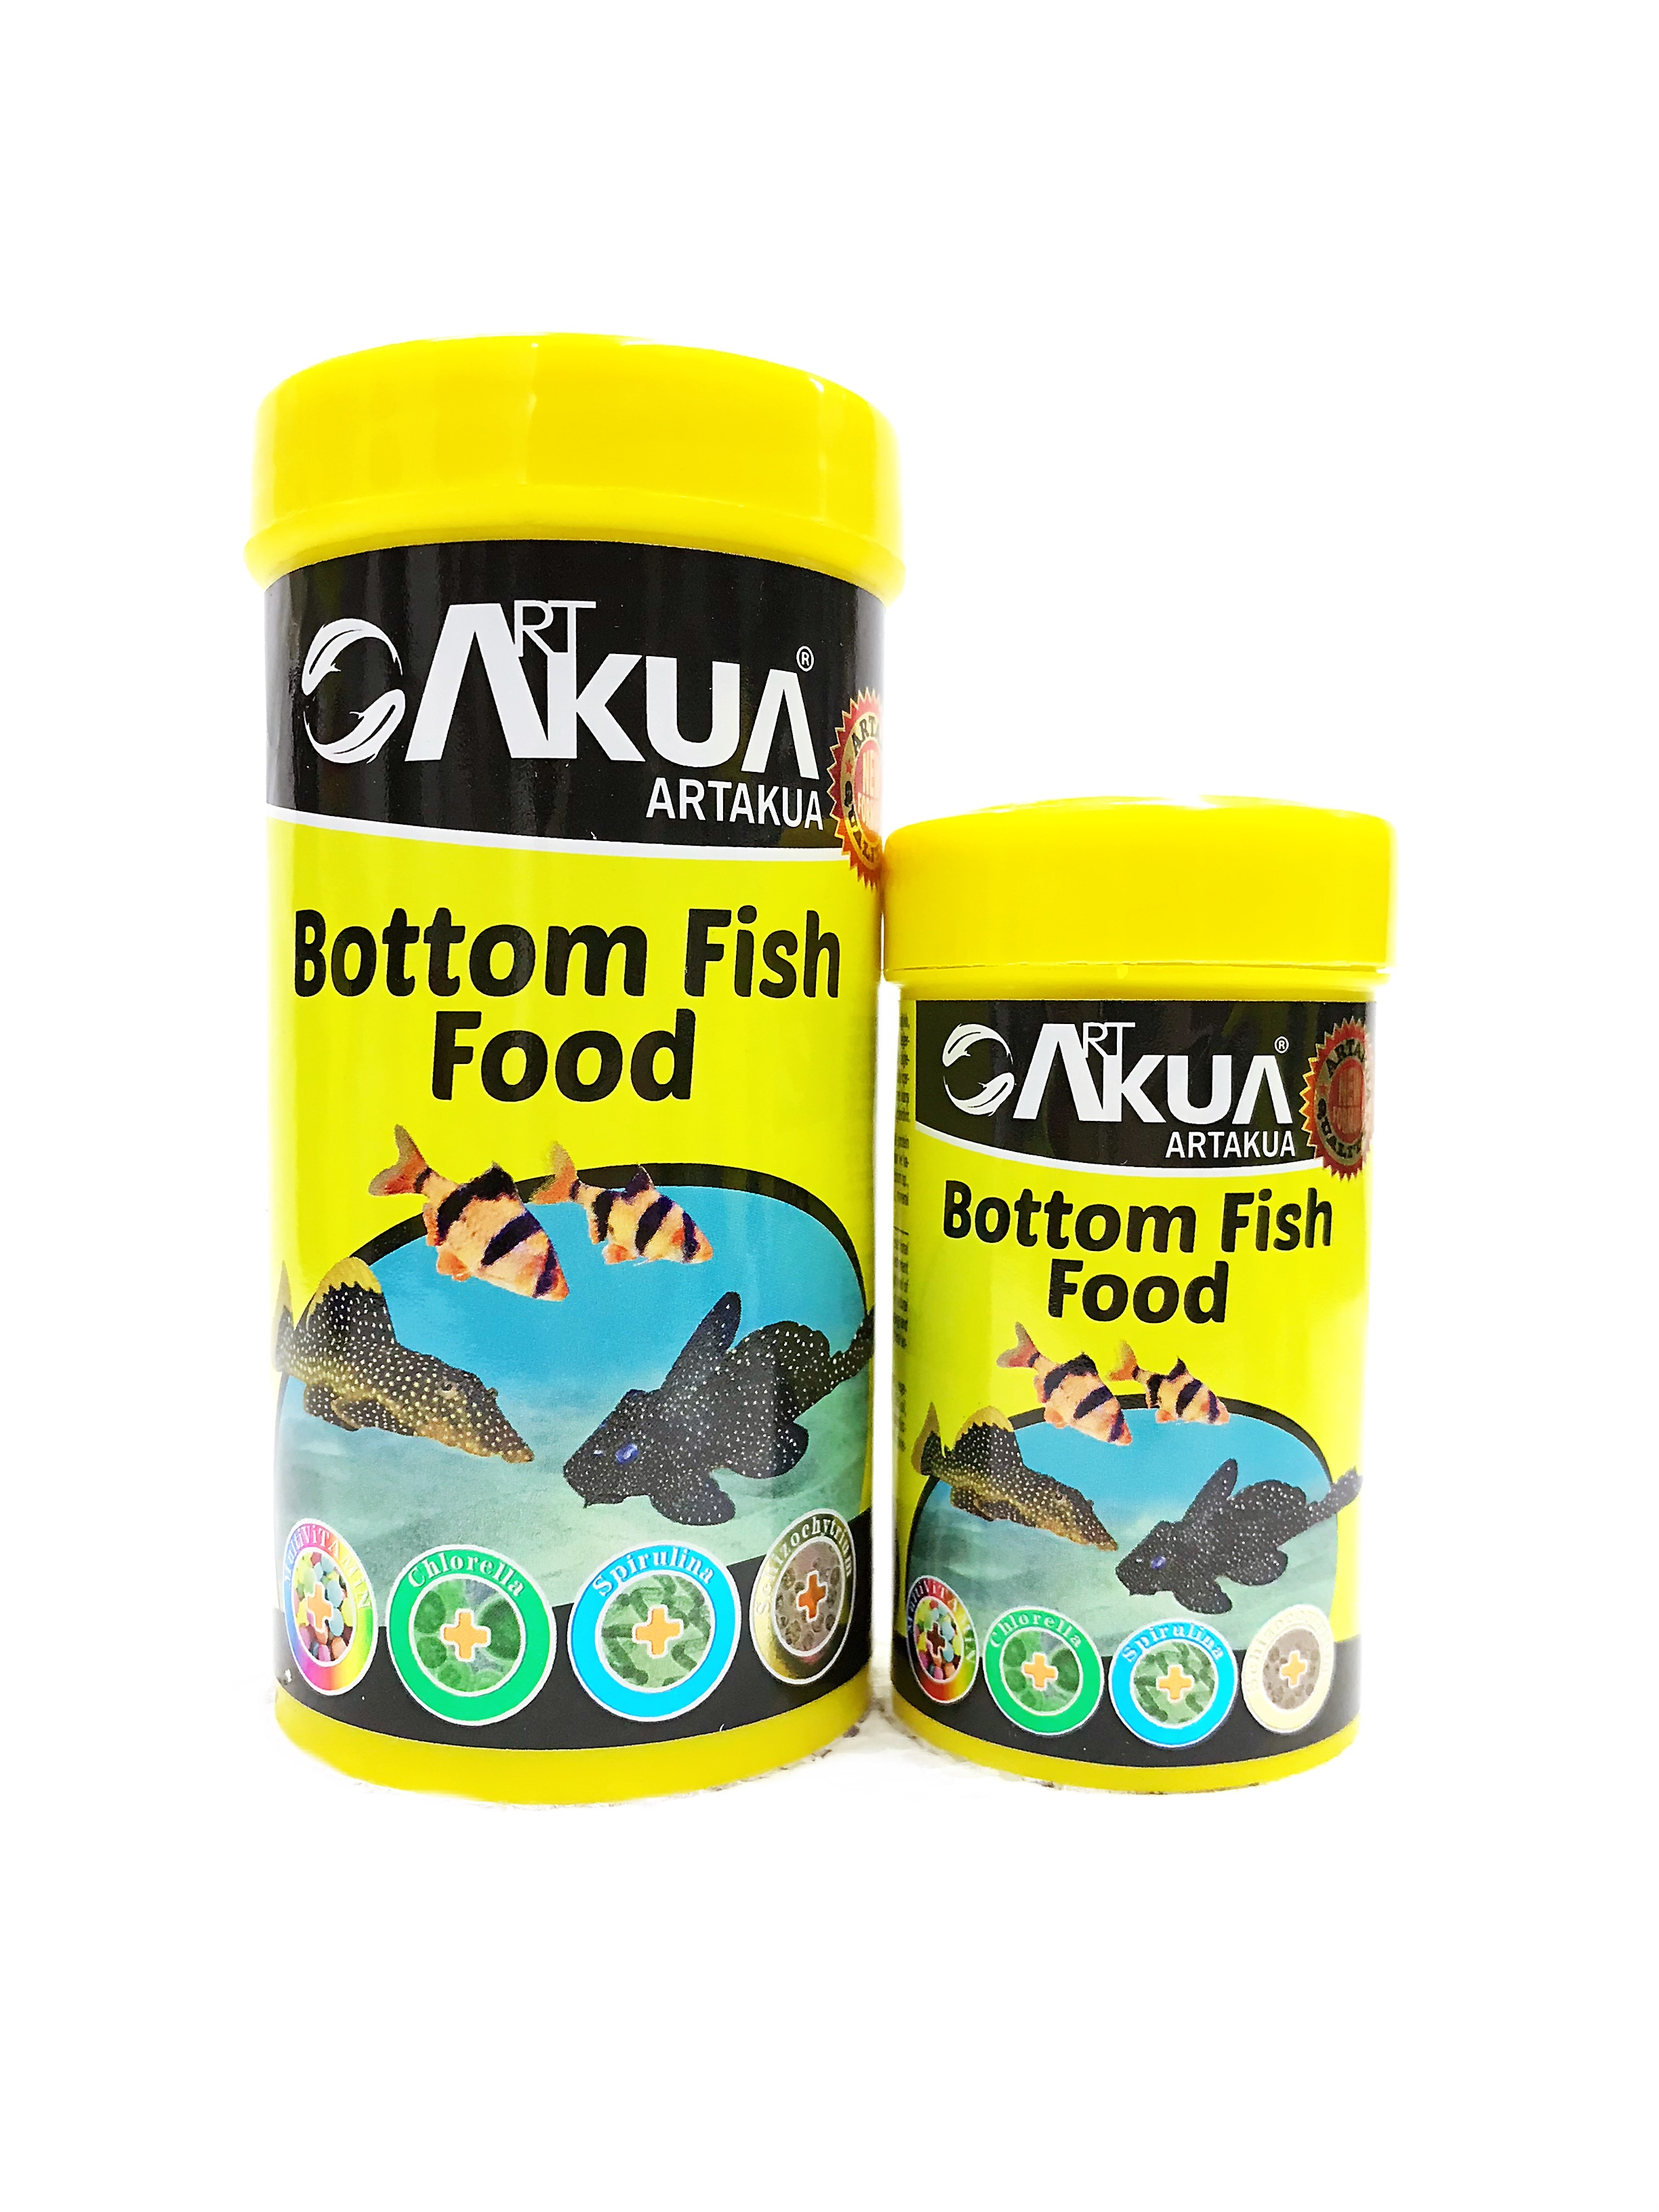 Artakua Bottom Fish Food